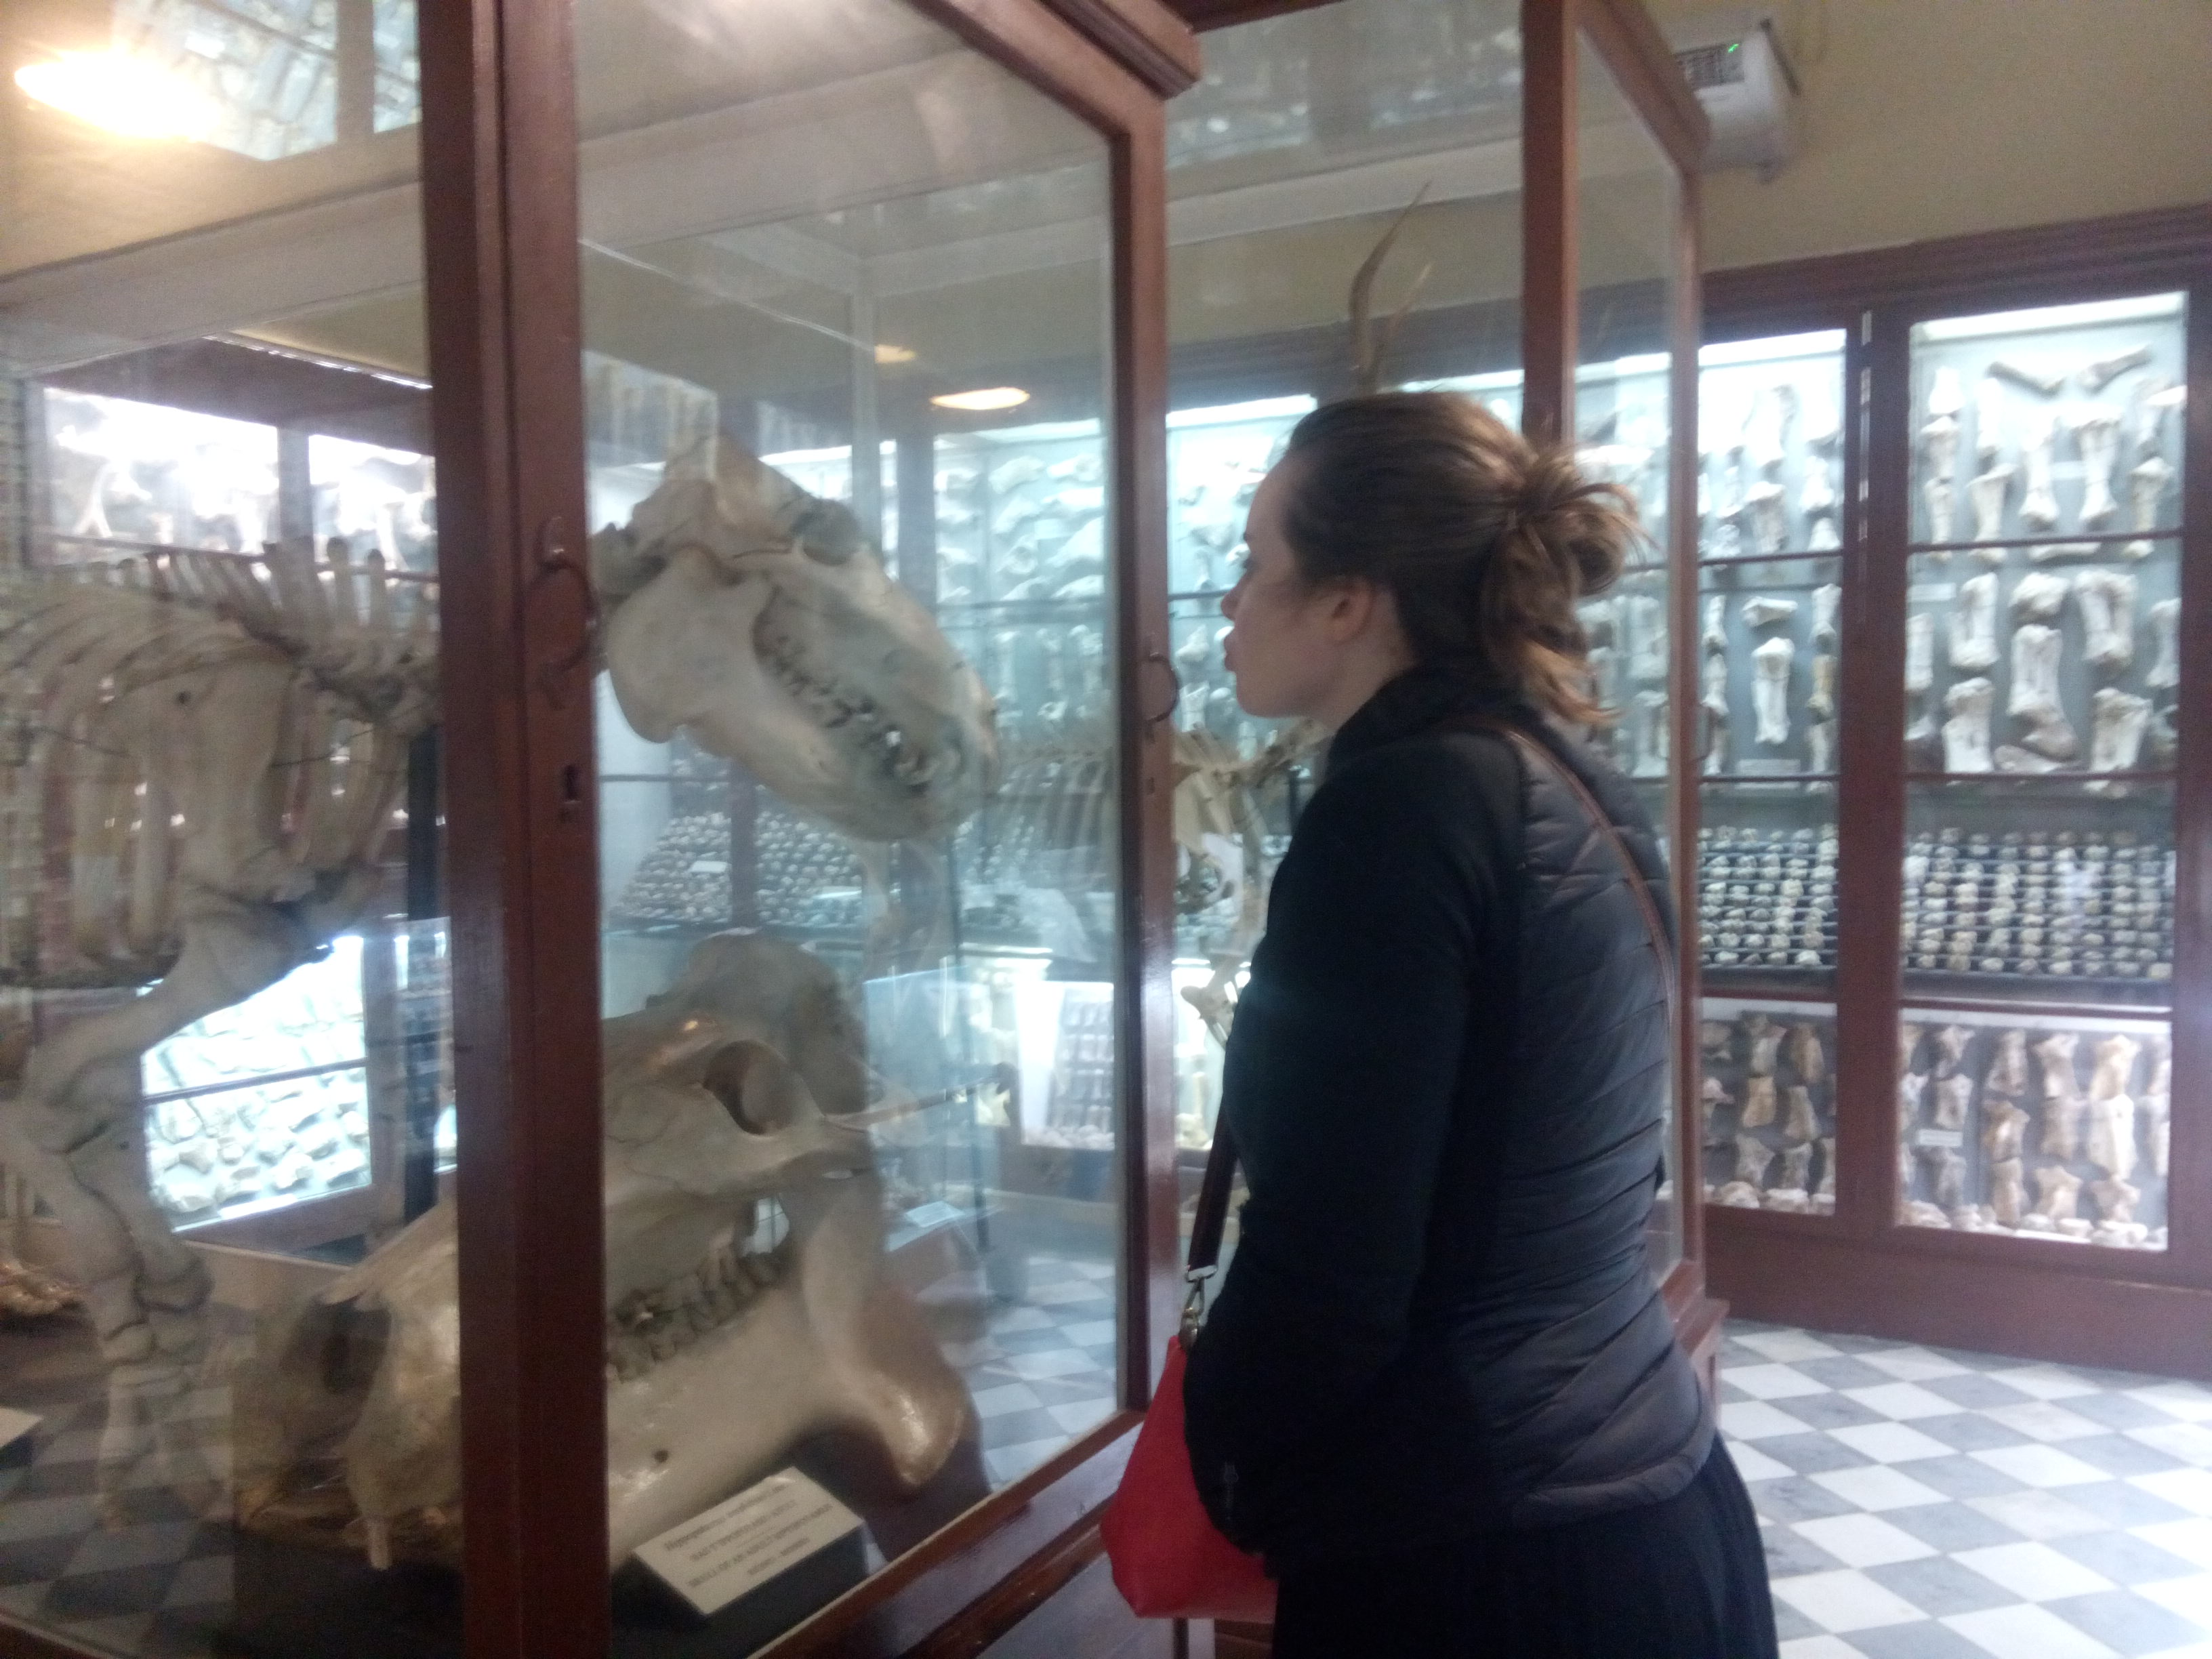 A woman in a black jacket kisses an animal skeleton, behind glass